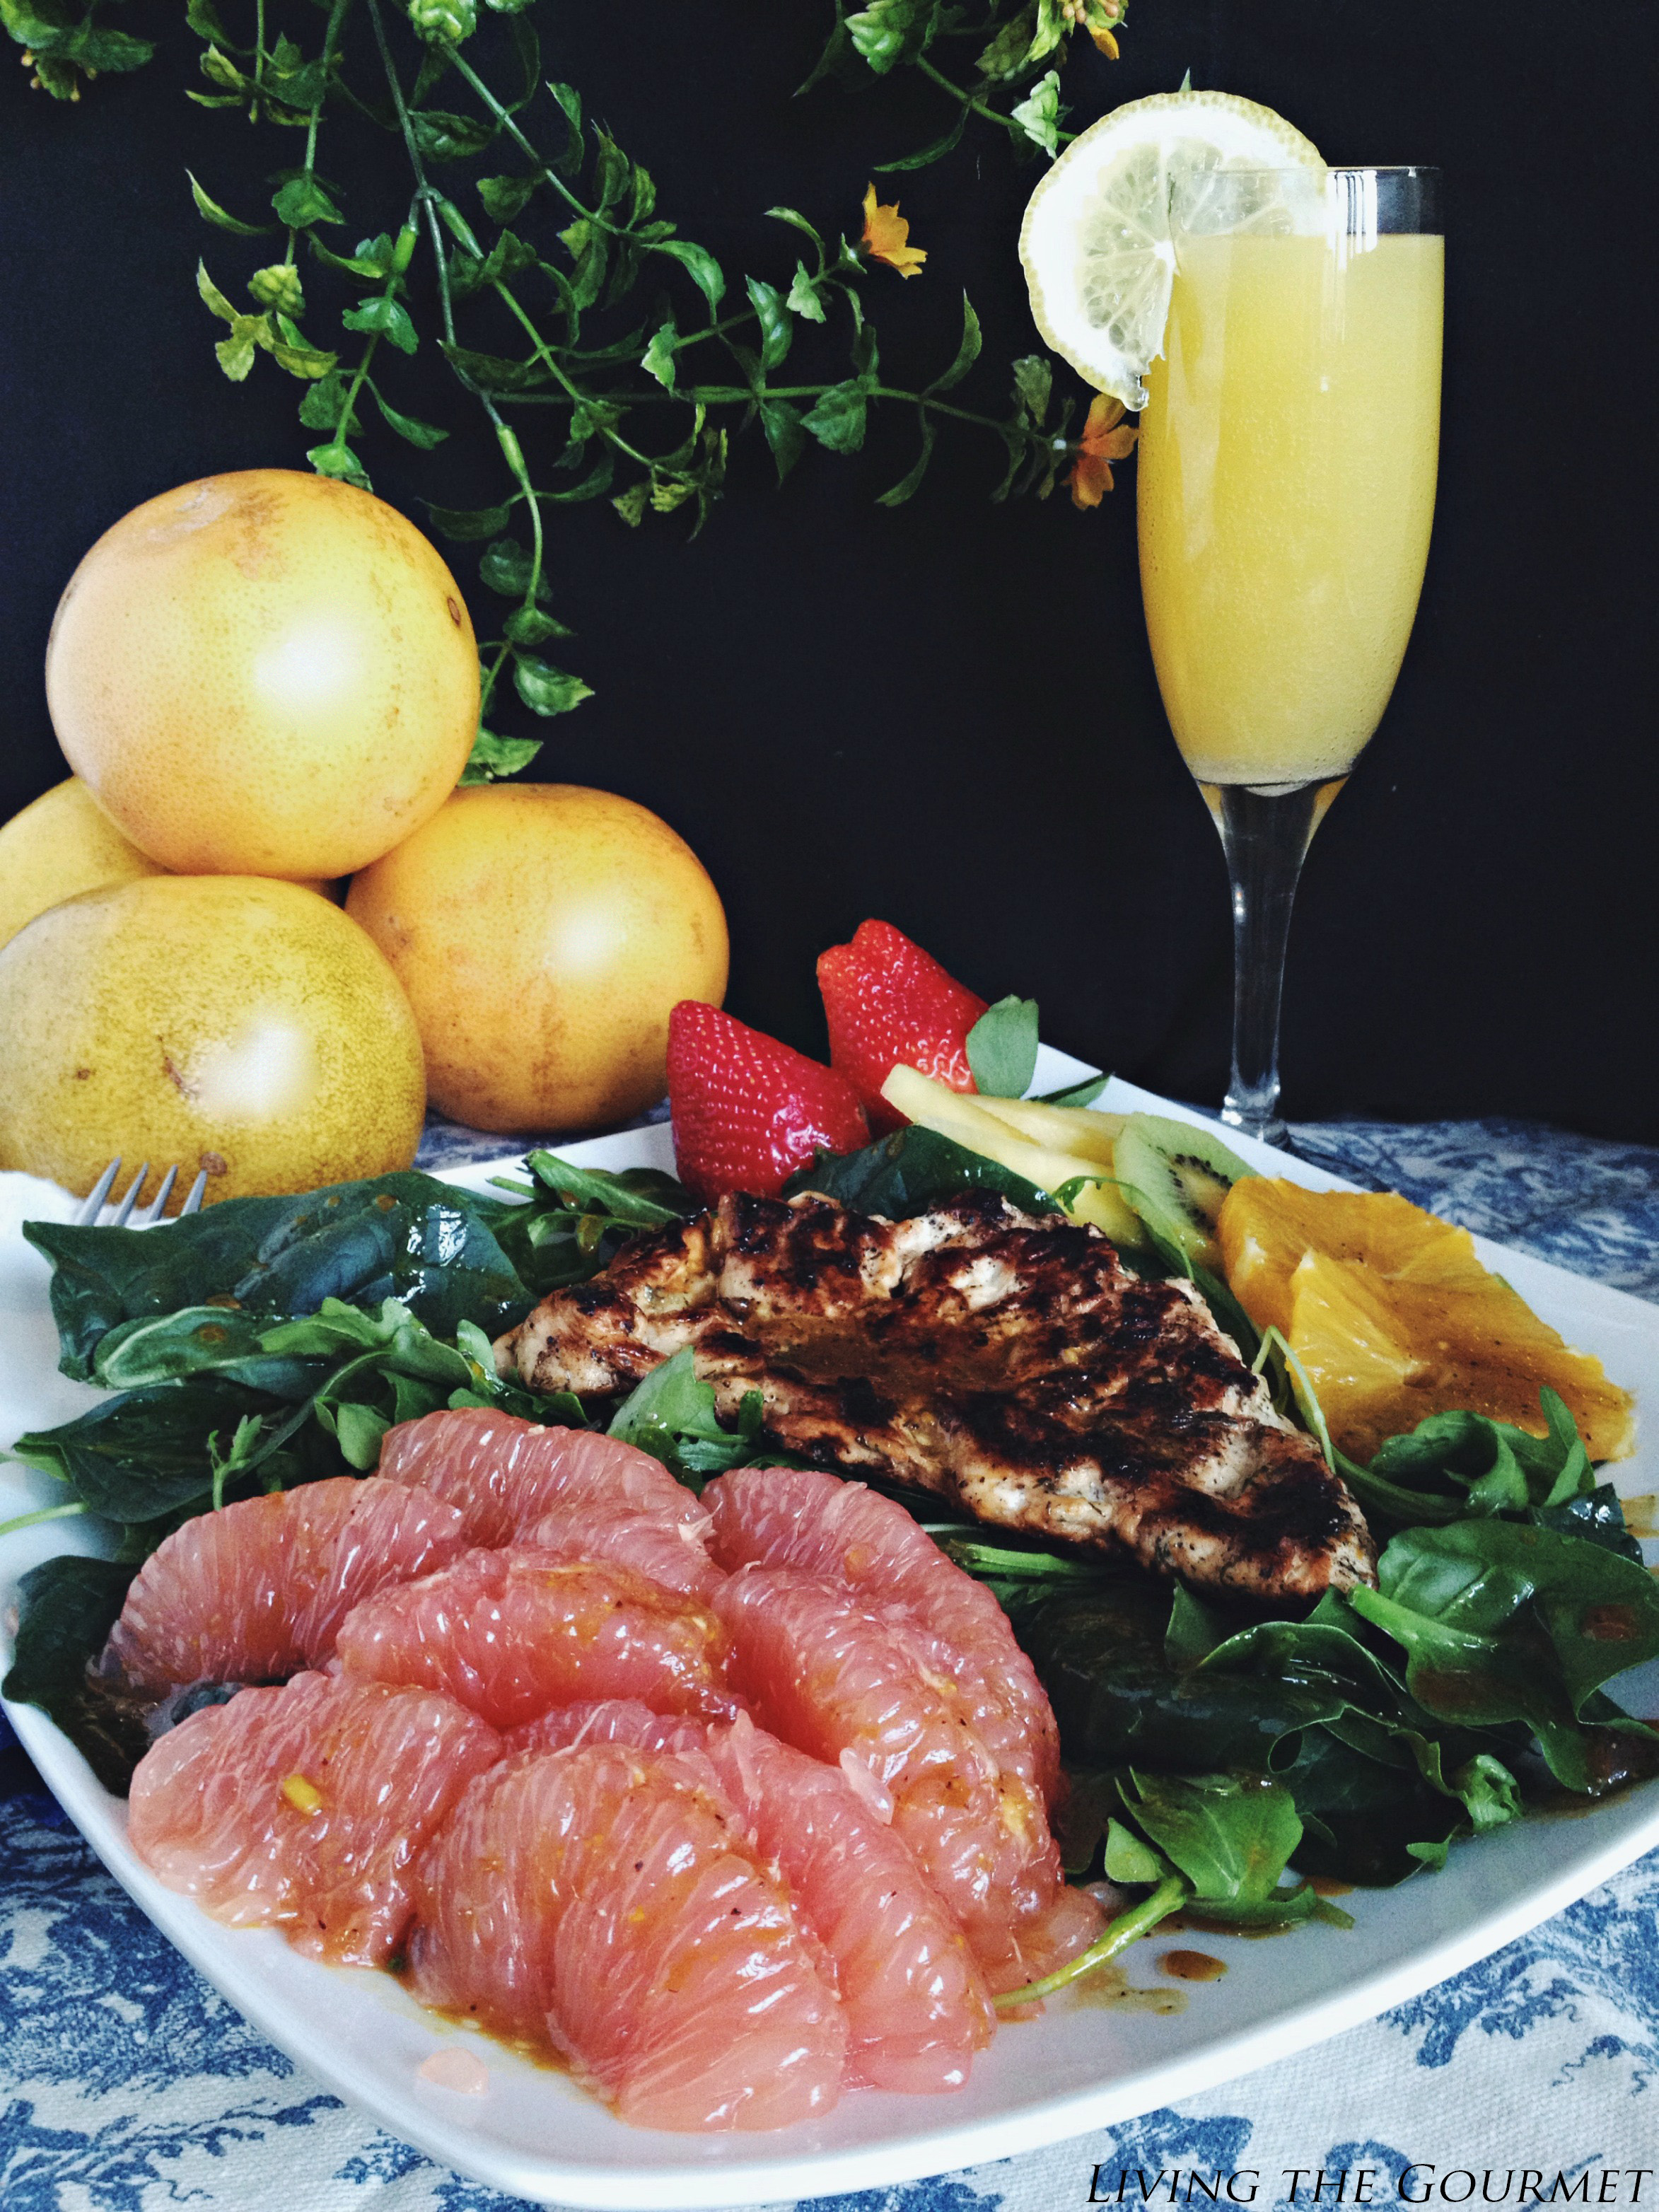 ... the Gourmet: Grilled Chicken Citrus Salad with Balsamic Vinaigrette